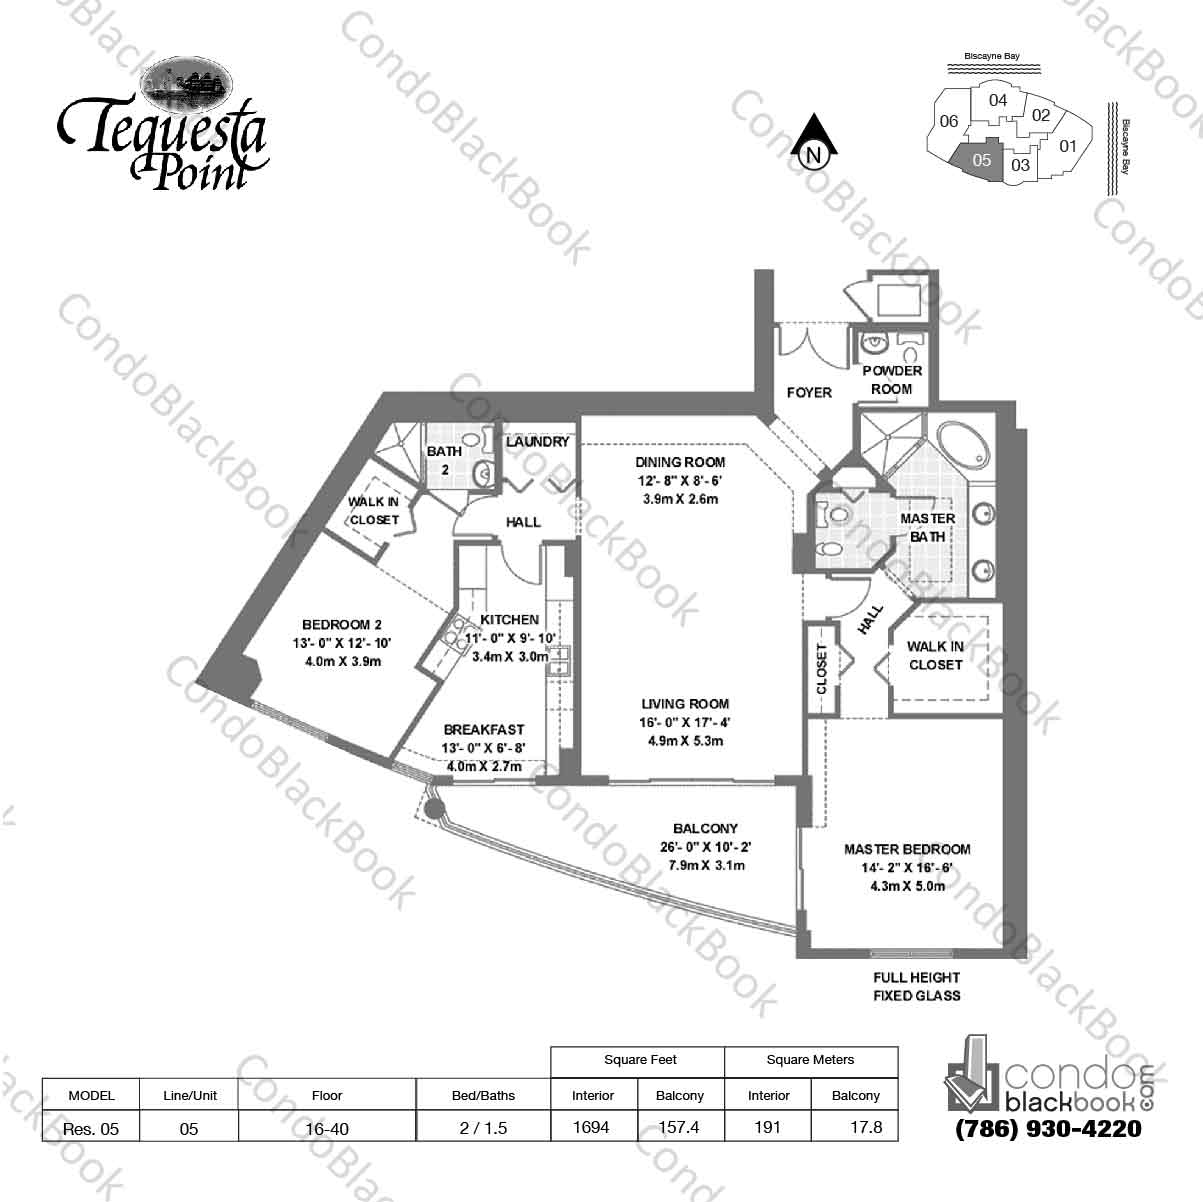 Floor plan for Three Tequesta Point Brickell Key Miami, model Res. 05, line 05, 2 / 1.5 bedrooms, 1694 sq ft